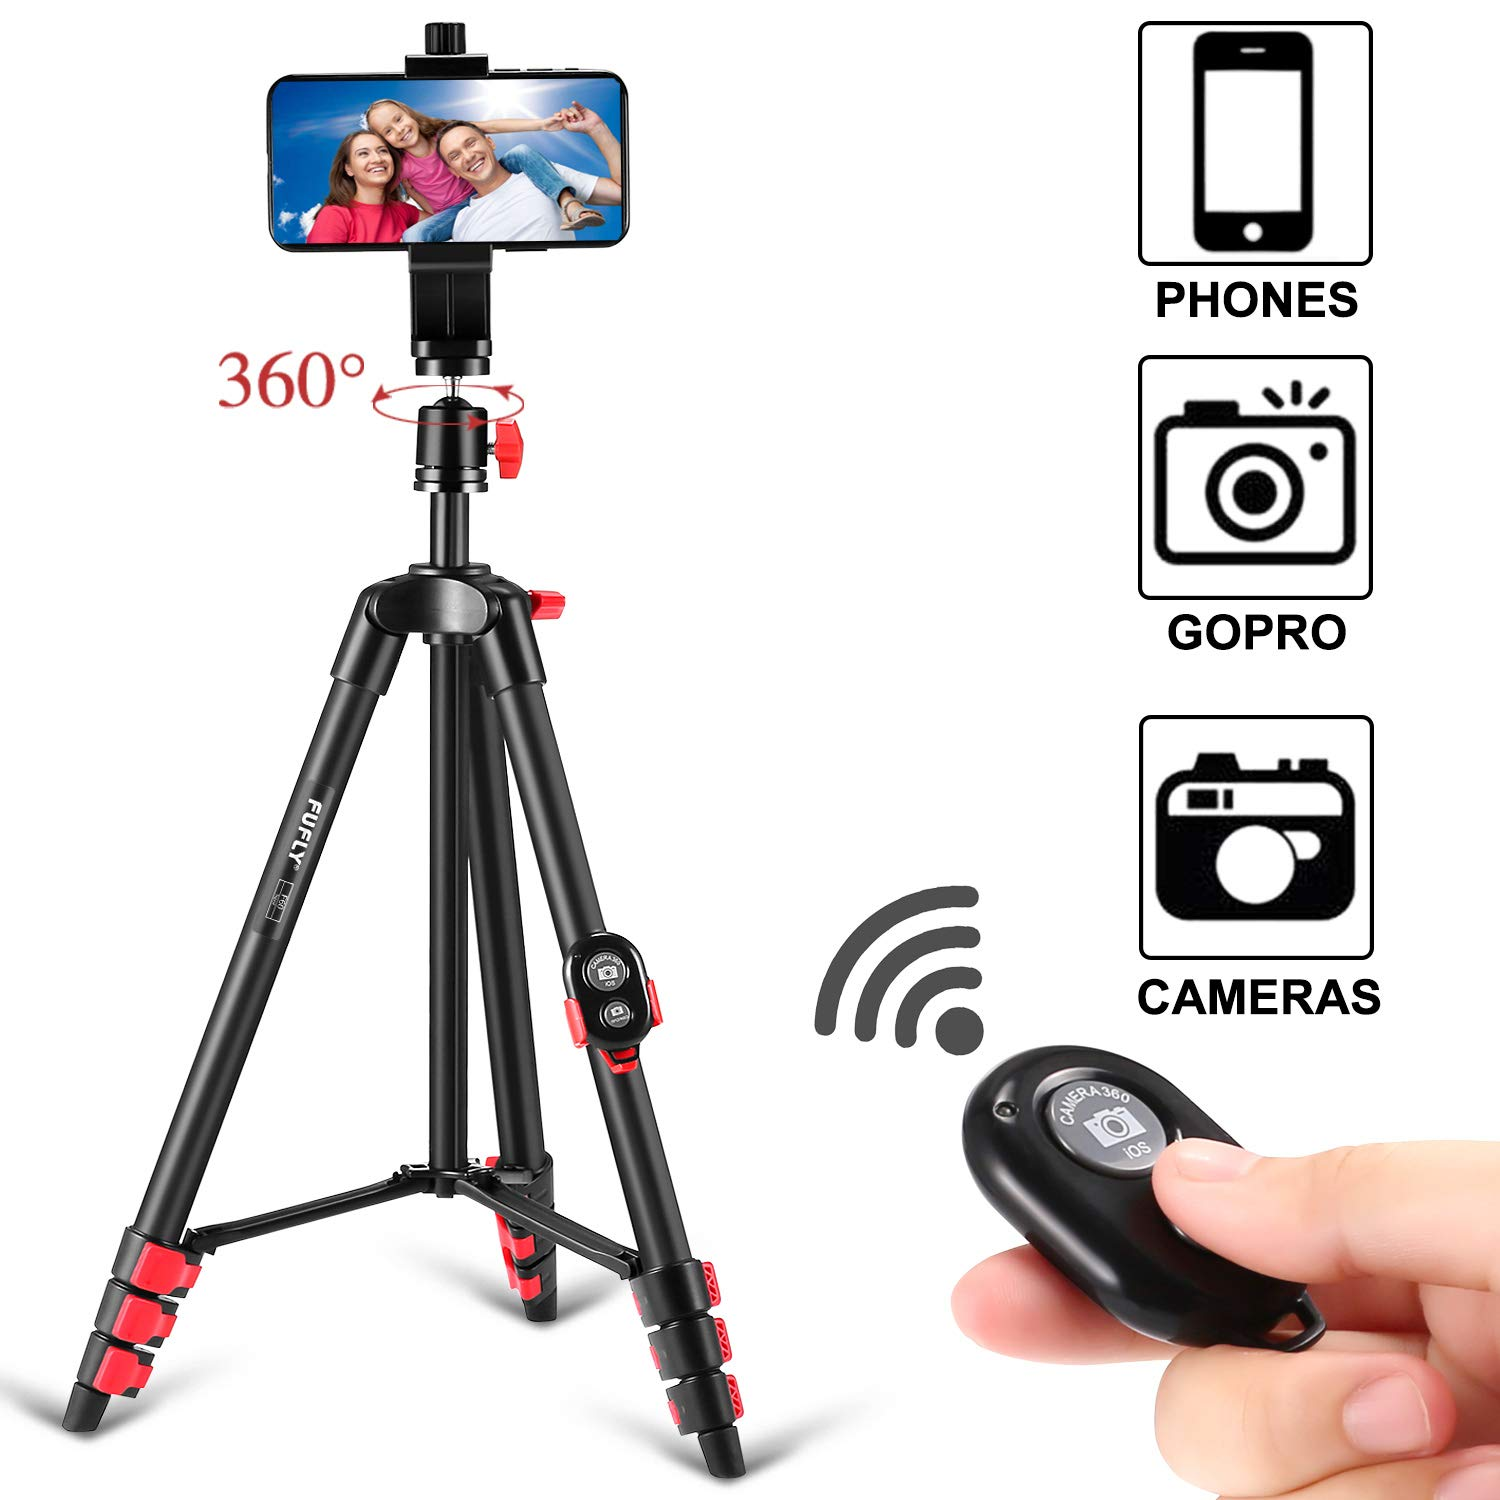 I love this phone tripod!